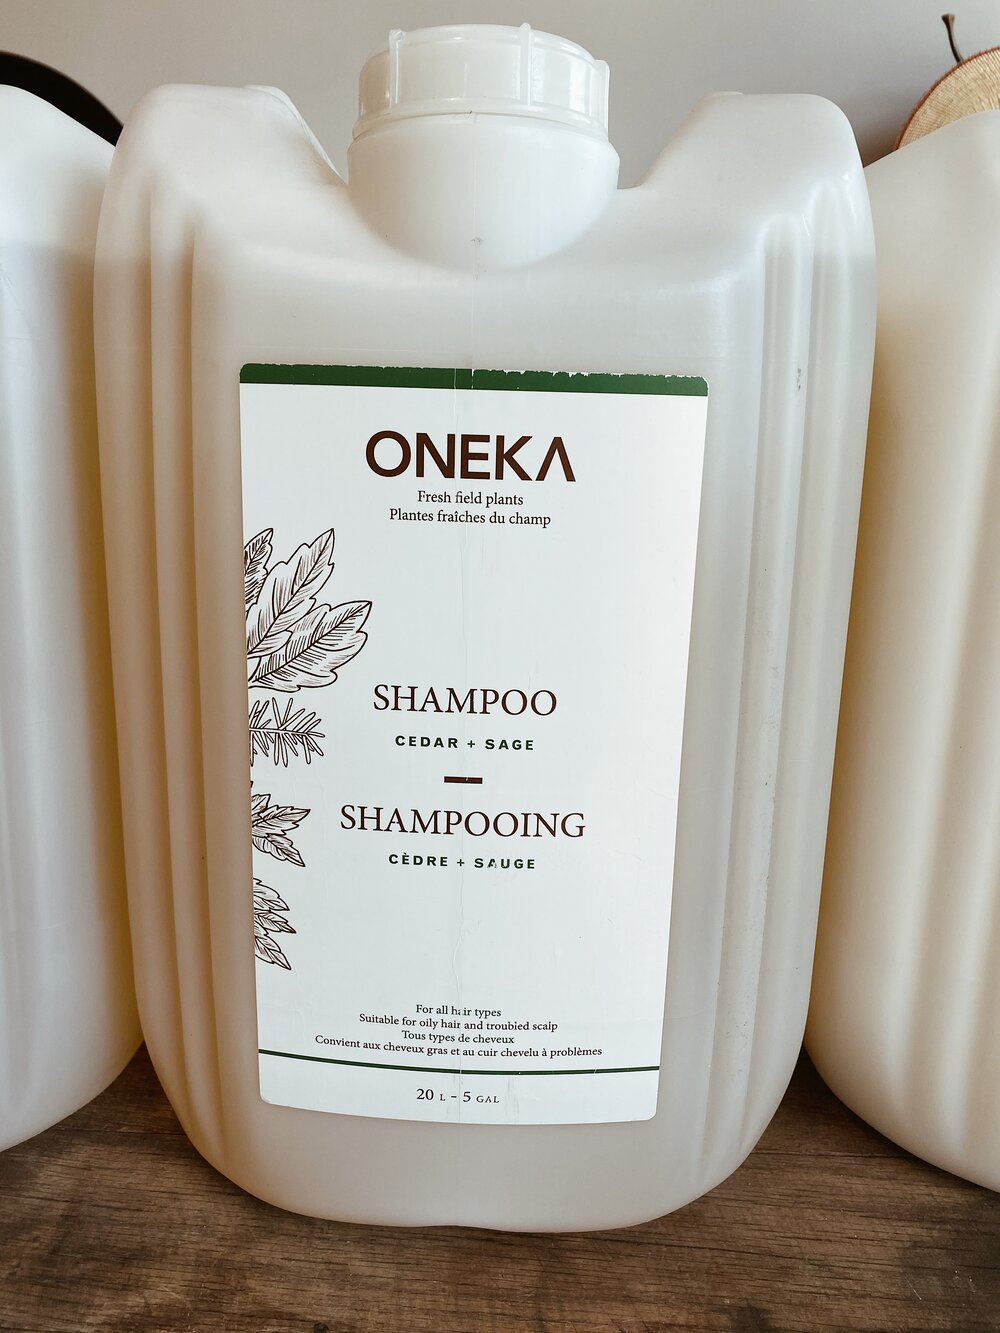 Cedar + Sage Shampoo/Conditioner Organic Fill Station